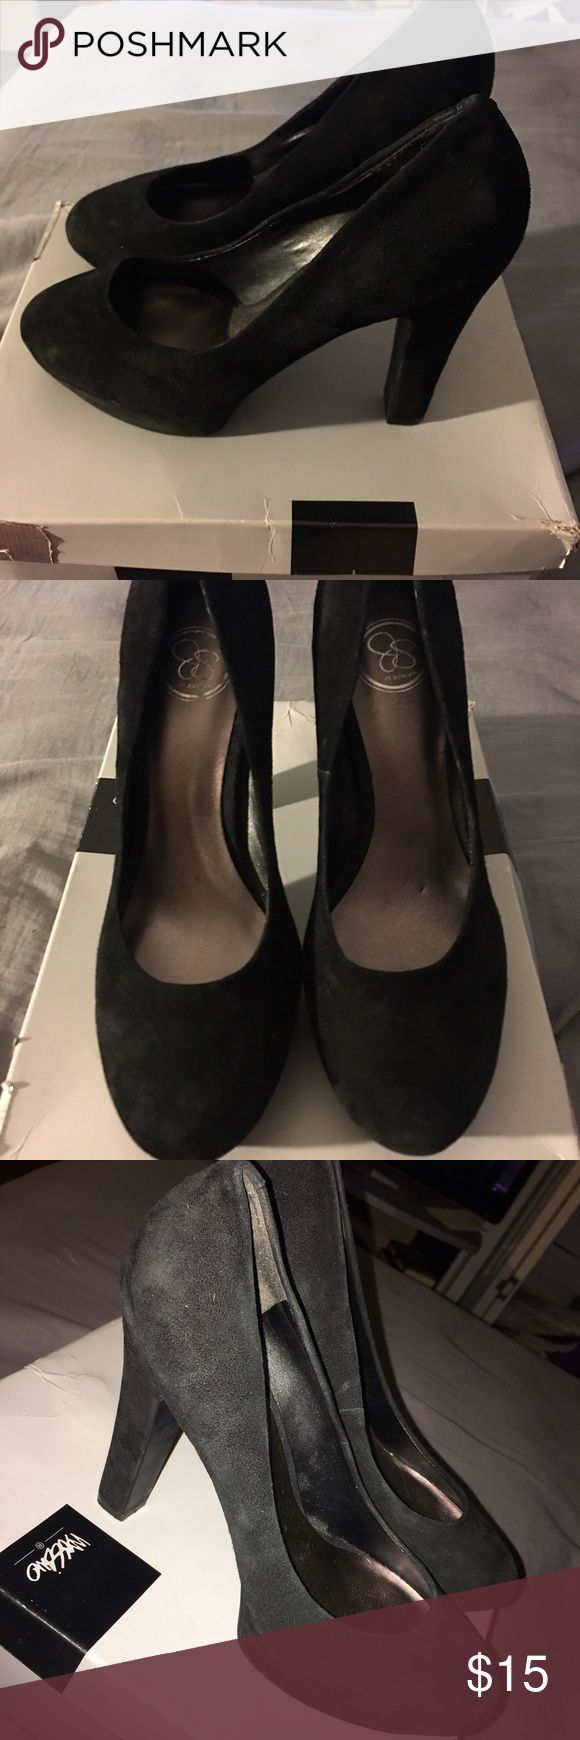 Jessica Simpson heels Jessica Simpson heels. Size 10. They have scuffs from storage. Jessica Simpson Shoes Heels